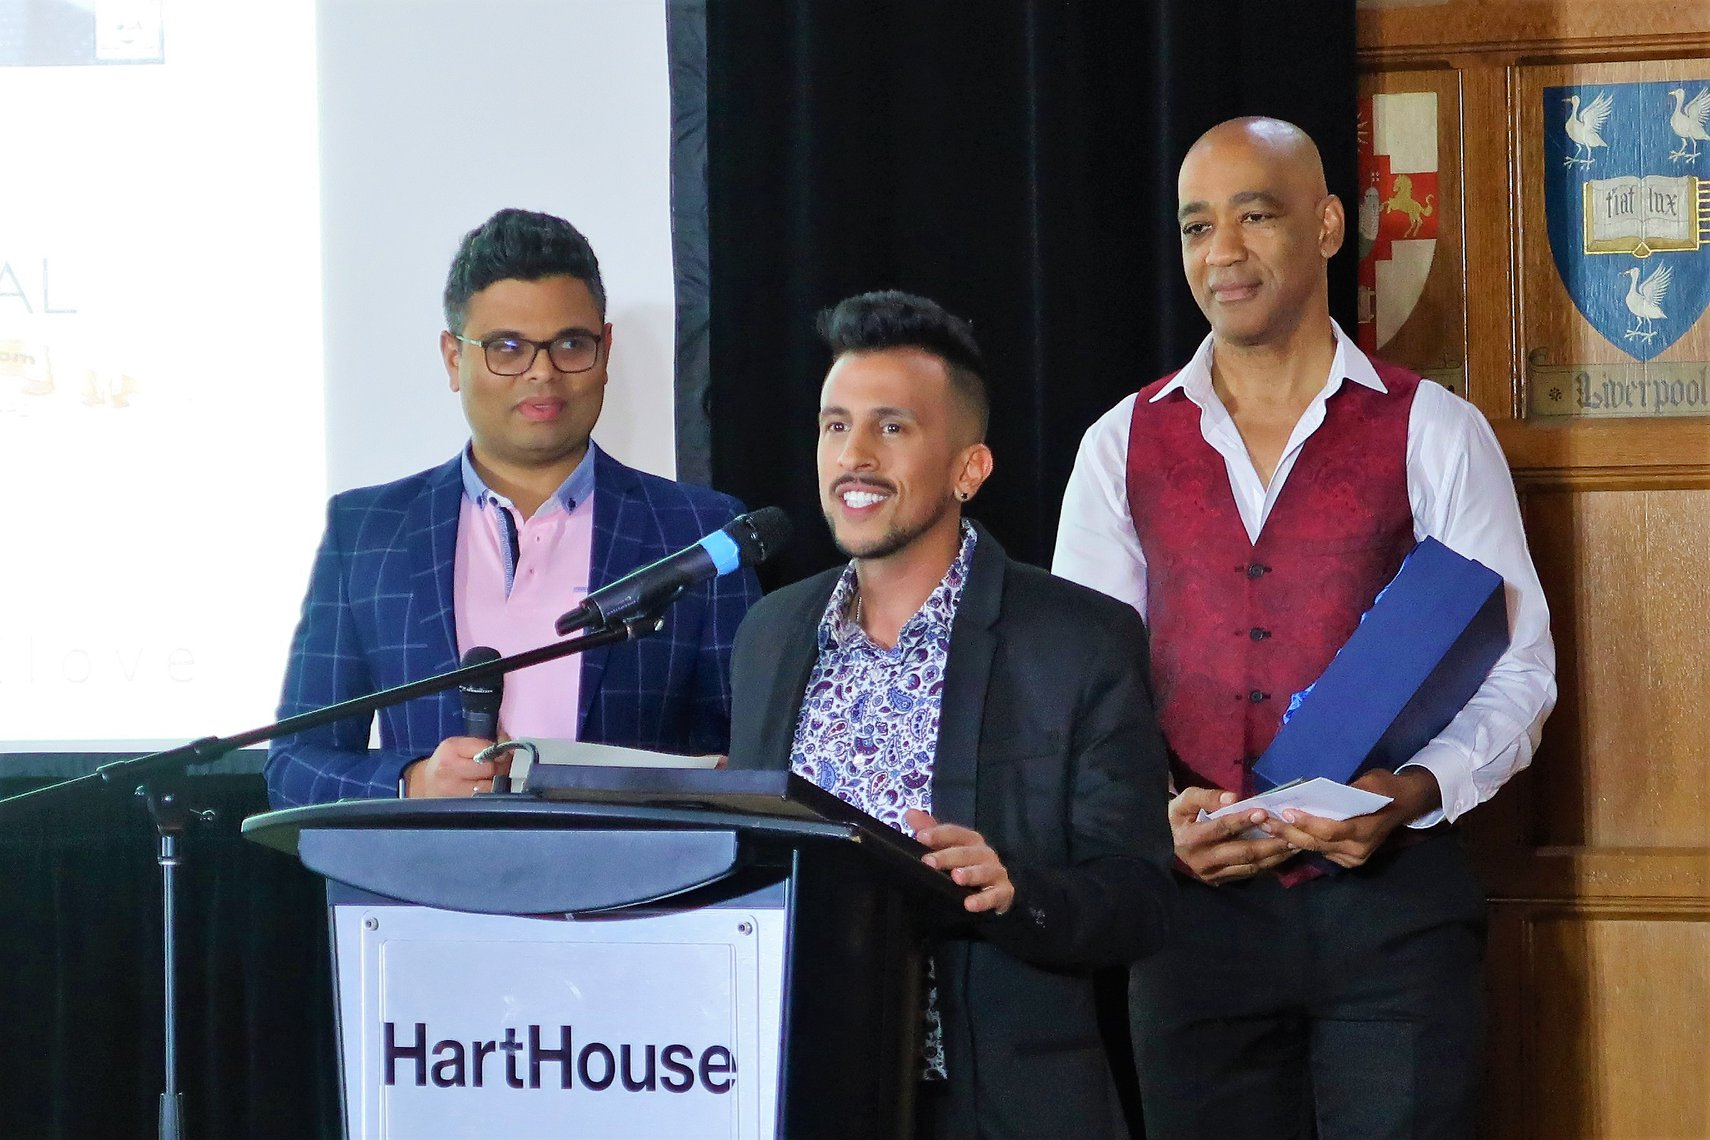 Recipients of the Best LGBTQ+ Business of the Year by the INSPIRE Awards